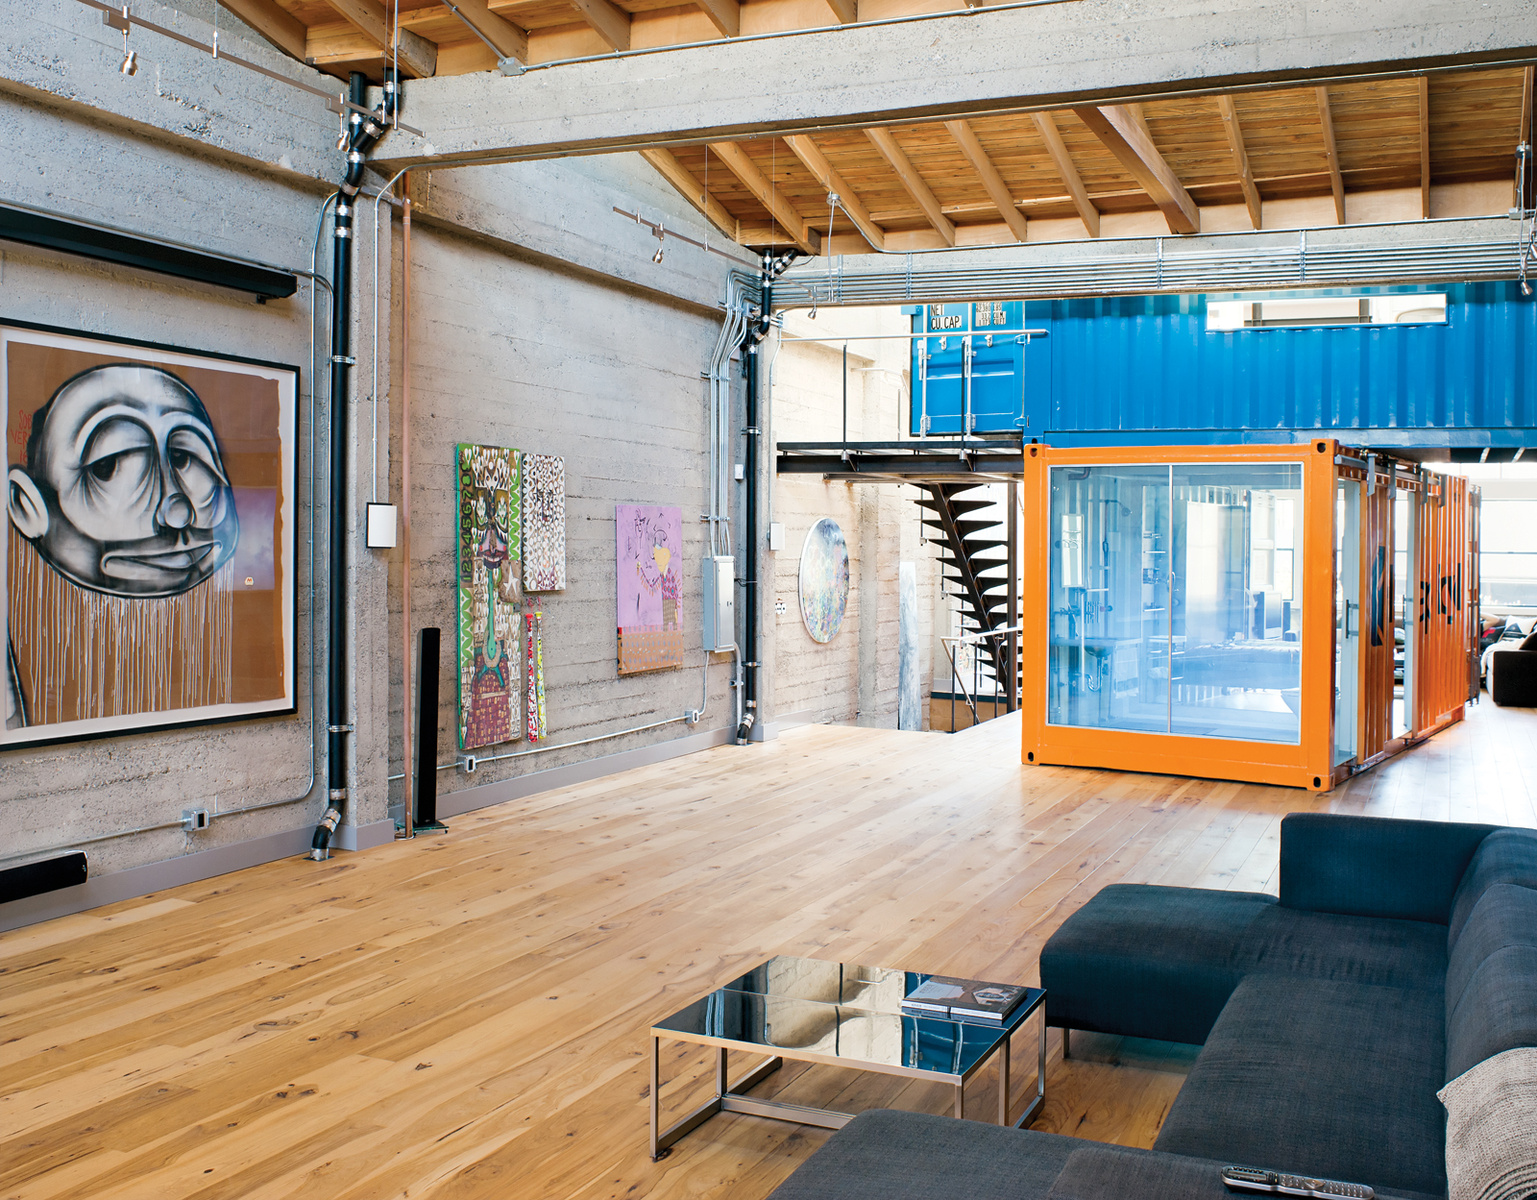 Shipping container homes shipping containers in loft apartment san francisco california - Container homes california ...